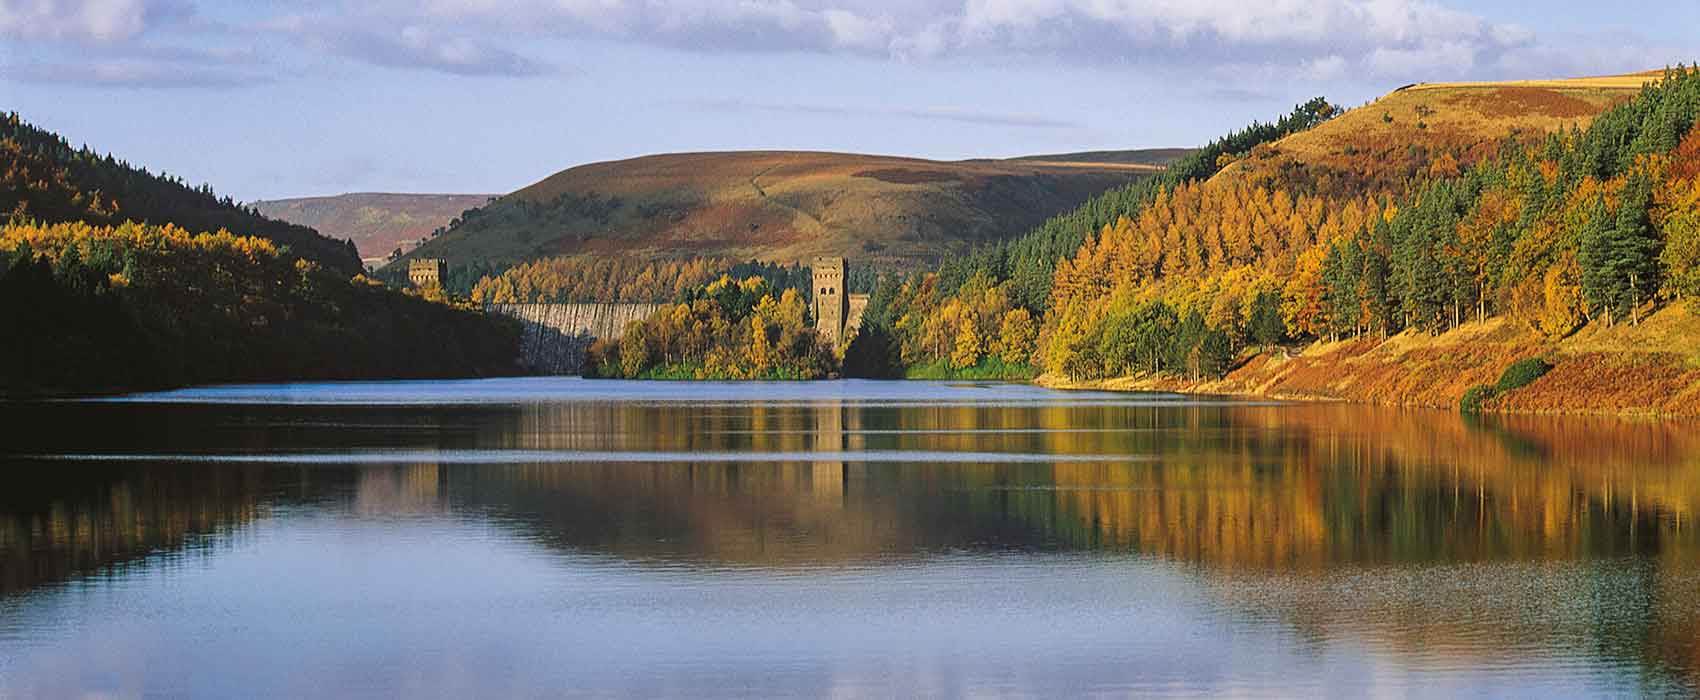 Howden-Dam-Upper-Derwent-peak-district